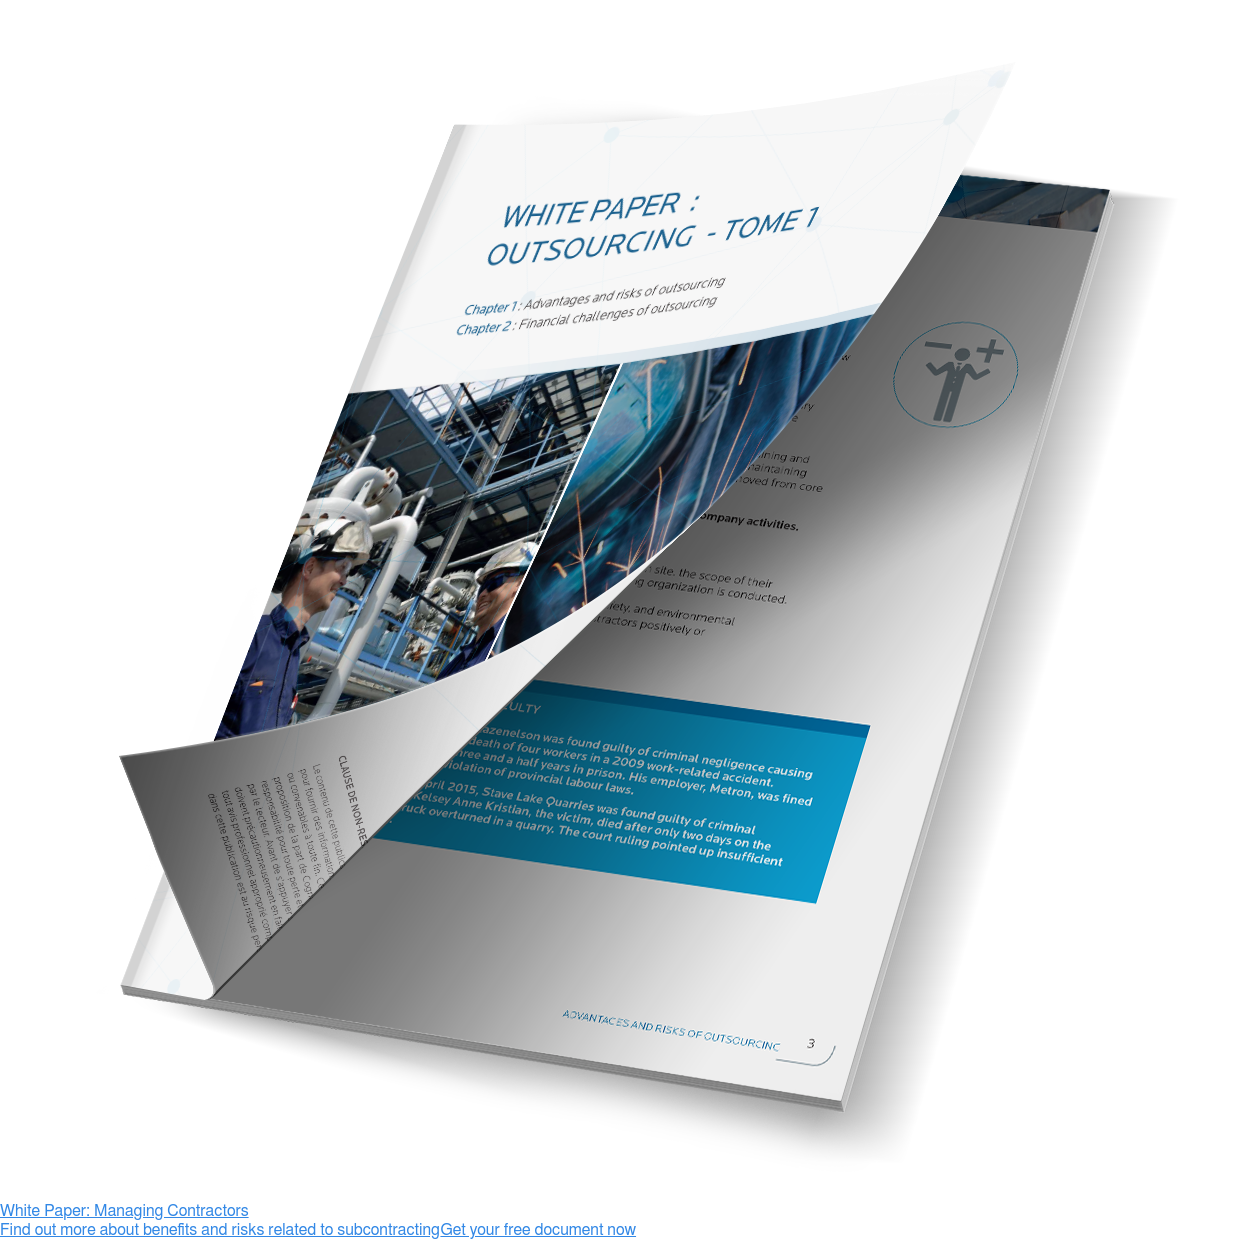 White Paper: Understanding the risks and financial challenges related to outsourcing